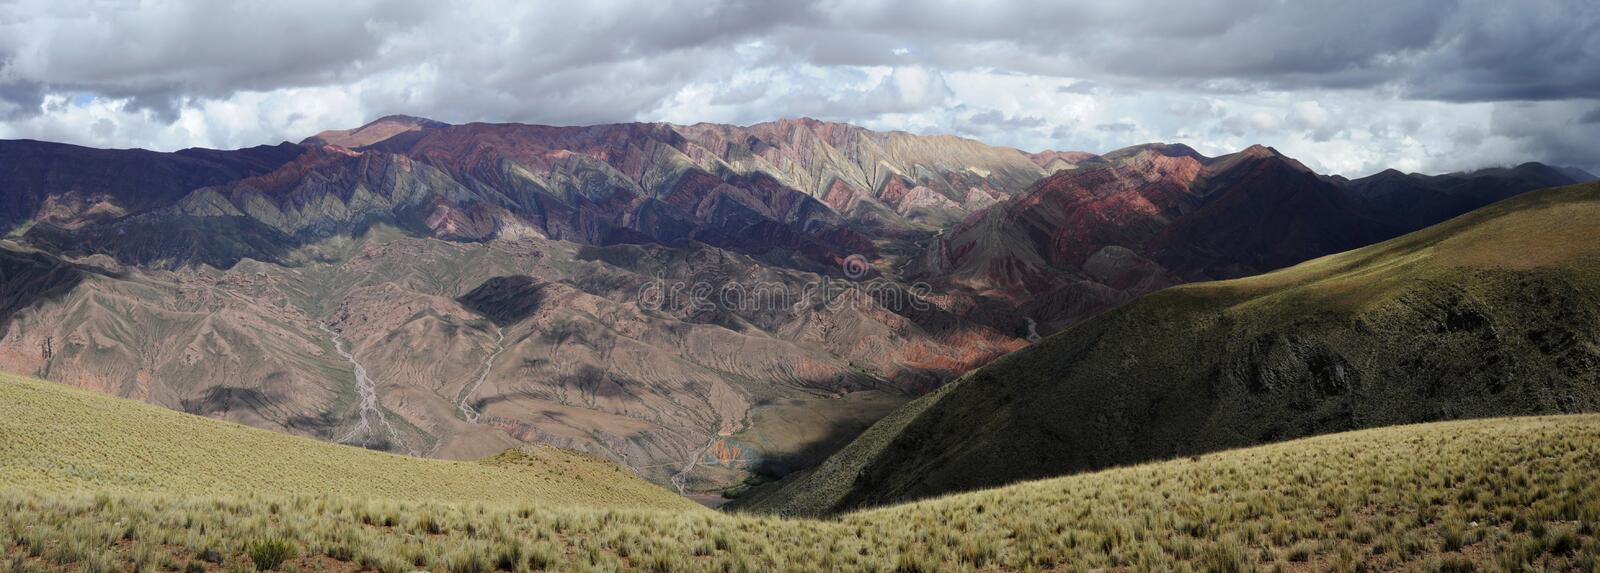 Download The Hornocal Massive Near Humahuaca On Argentina A Stock Photo - Image: 22196308